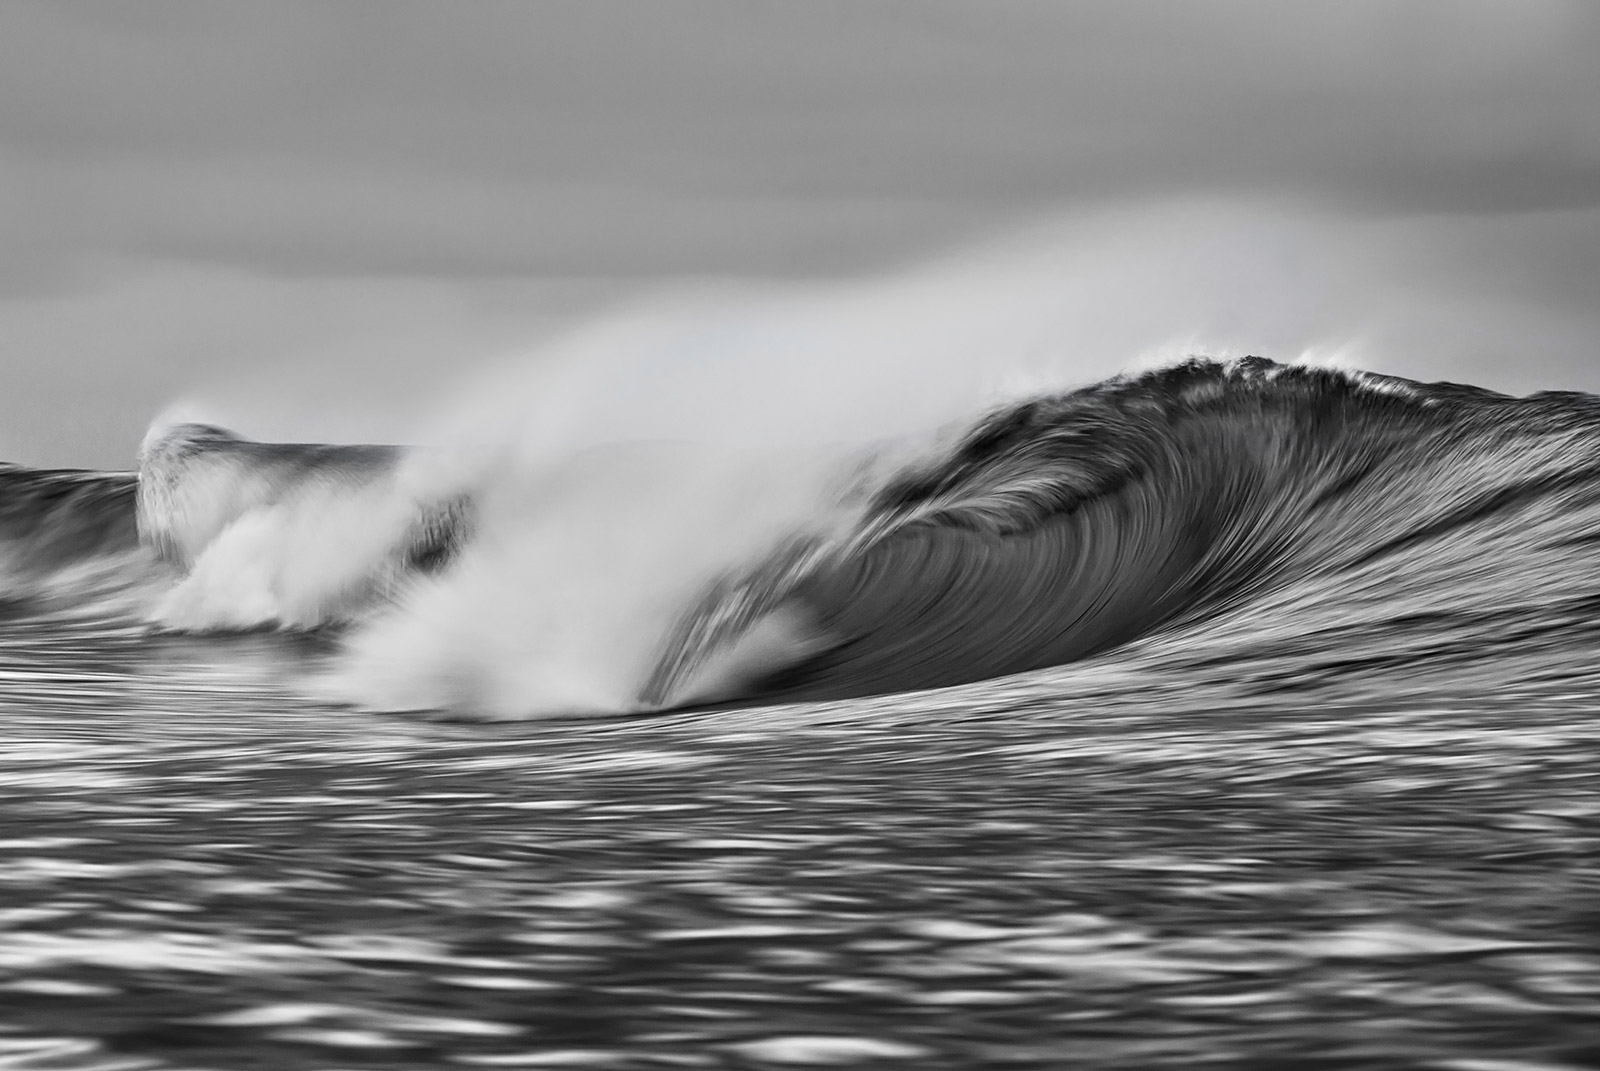 abc_photo_jussi_grznar_empty_wave_2618BW7-copy